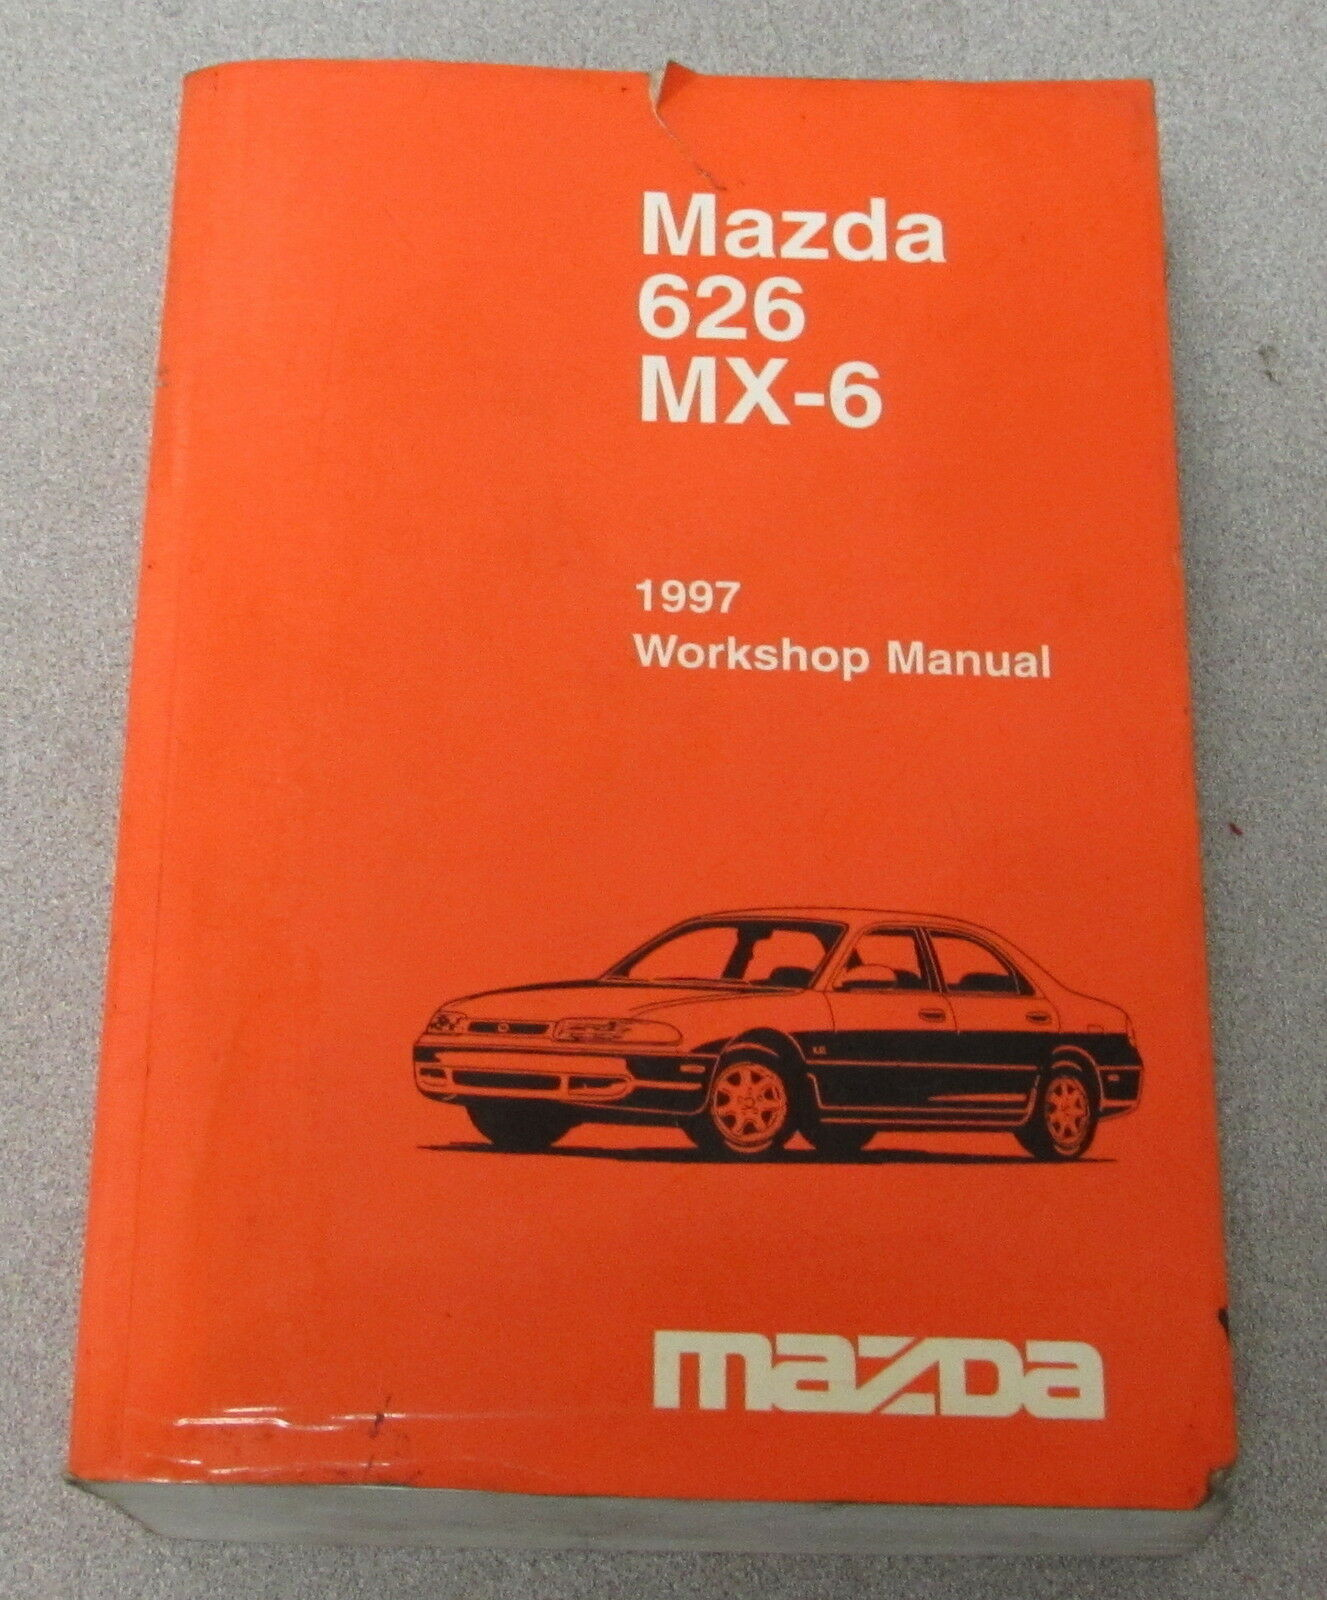 1997 Mazda 626 MX-6 Service Workshop Manual with Wiring Diagrams 1 of 1Only  1 available ...